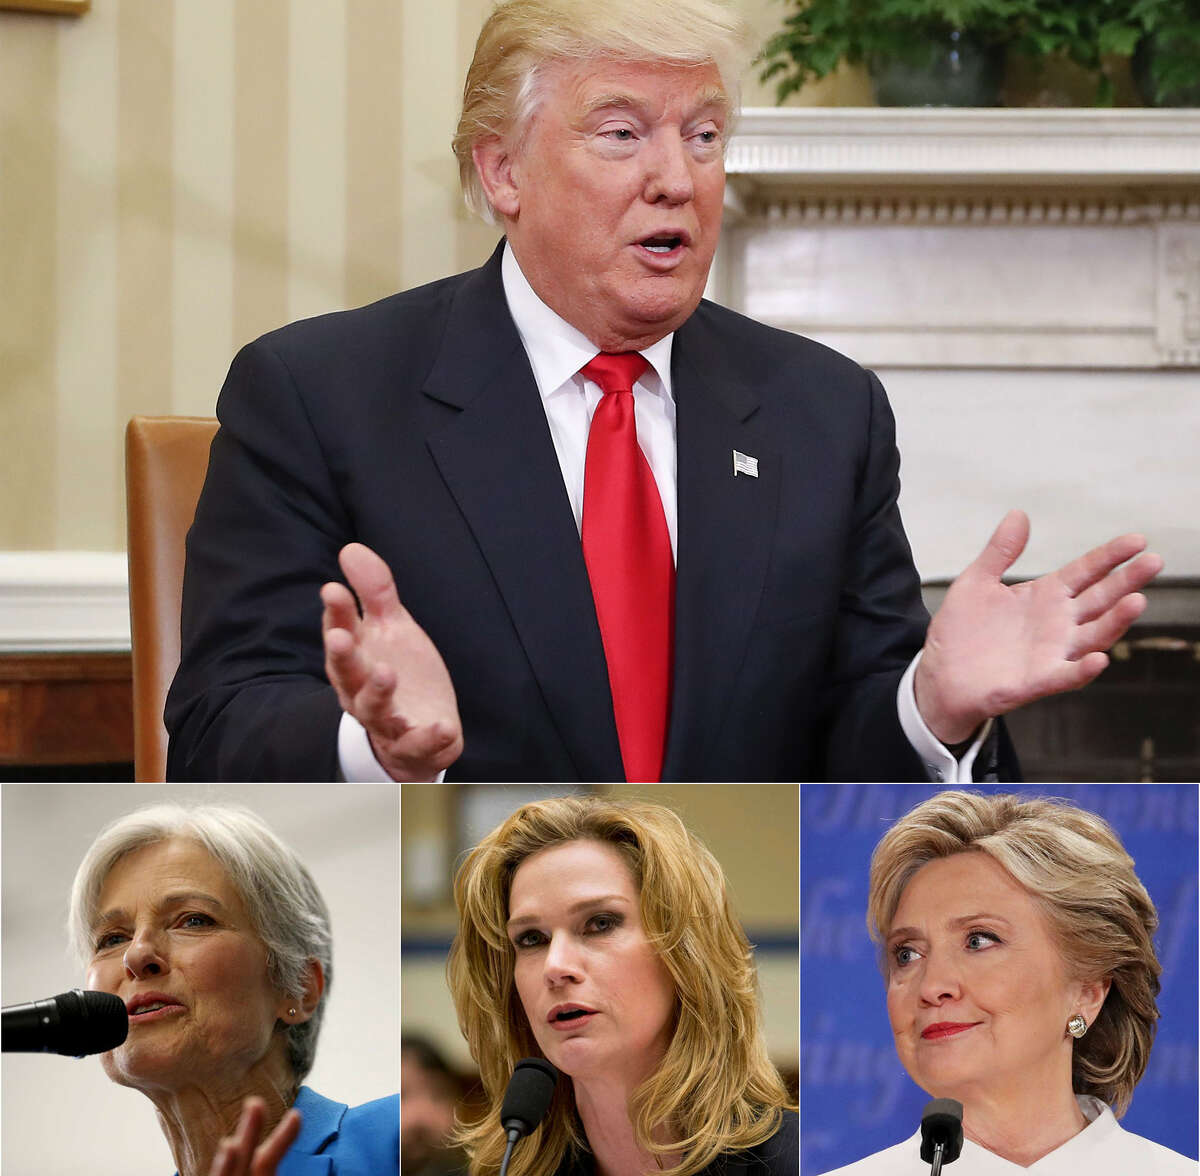 President-elect Donald Trump has complained about the movement for a vote recount.  Above: In this Nov. 10, 2016 file photo, President-elect Donald Trump speaks during his meeting with President Barack Obama in the Oval Office of the White House in Washington.(AP Photo/Pablo Martinez Monsivais)  Below, left: Green Party presidential candidate Jill Stein speaks during a campaign stop at Galeria E.V.A Sunday Oct. 16, 2016. (Edward A. Ornelas / San Antonio Express-News) Below, middle: Catherine Engelbrecht, founder of King Street Patriots, testifies on Capitol Hill in Washington, Thursday, Feb. 6, 2014, before the House subcommittee on Economic Growth, Job Creation hearing to investigate the Justice Department's investigation into an IRS abuse scandal. (AP Photo/Pablo Martinez Monsivais)  Below, right: Democratic presidential nominee former Secretary of State Hillary Clinton listens to Republican presidential nominee Donald Trump speak during the third U.S. presidential debate at the Thomas & Mack Center on October 19, 2016 in Las Vegas, Nevada. Photo by Drew Angerer/Getty Images)